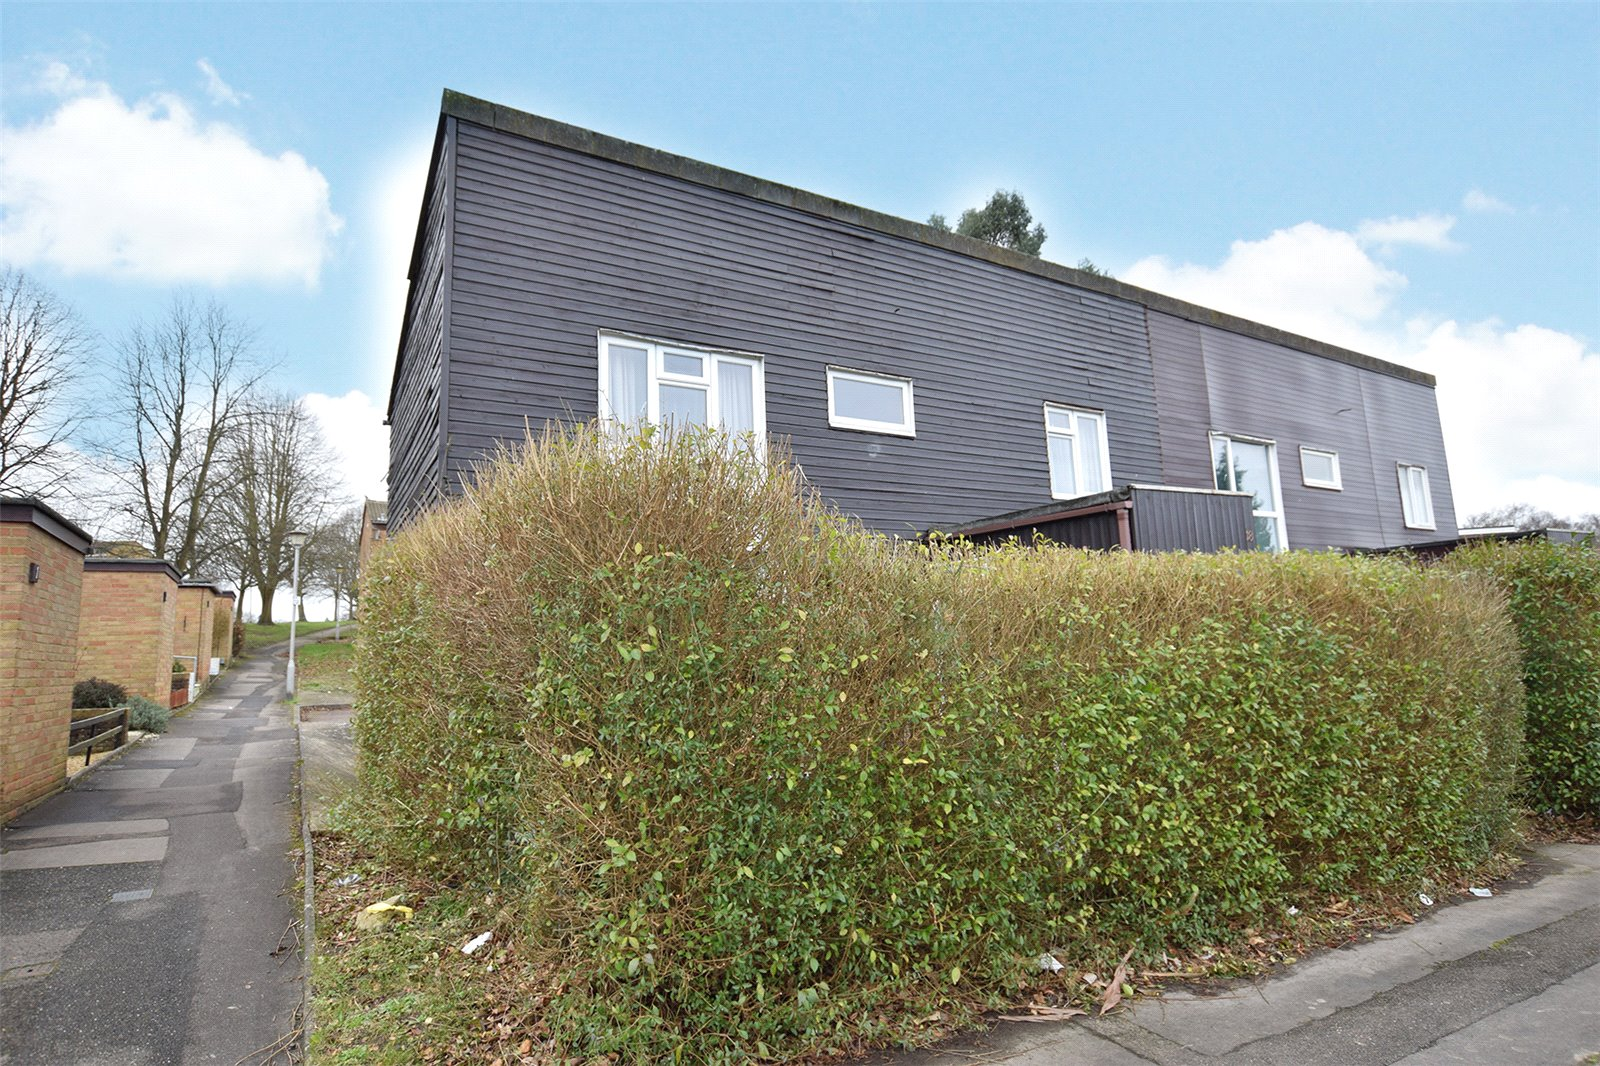 1 Bedroom Maisonette Flat for sale in Liscombe, Birch Hill, Bracknell, Berkshire, RG12